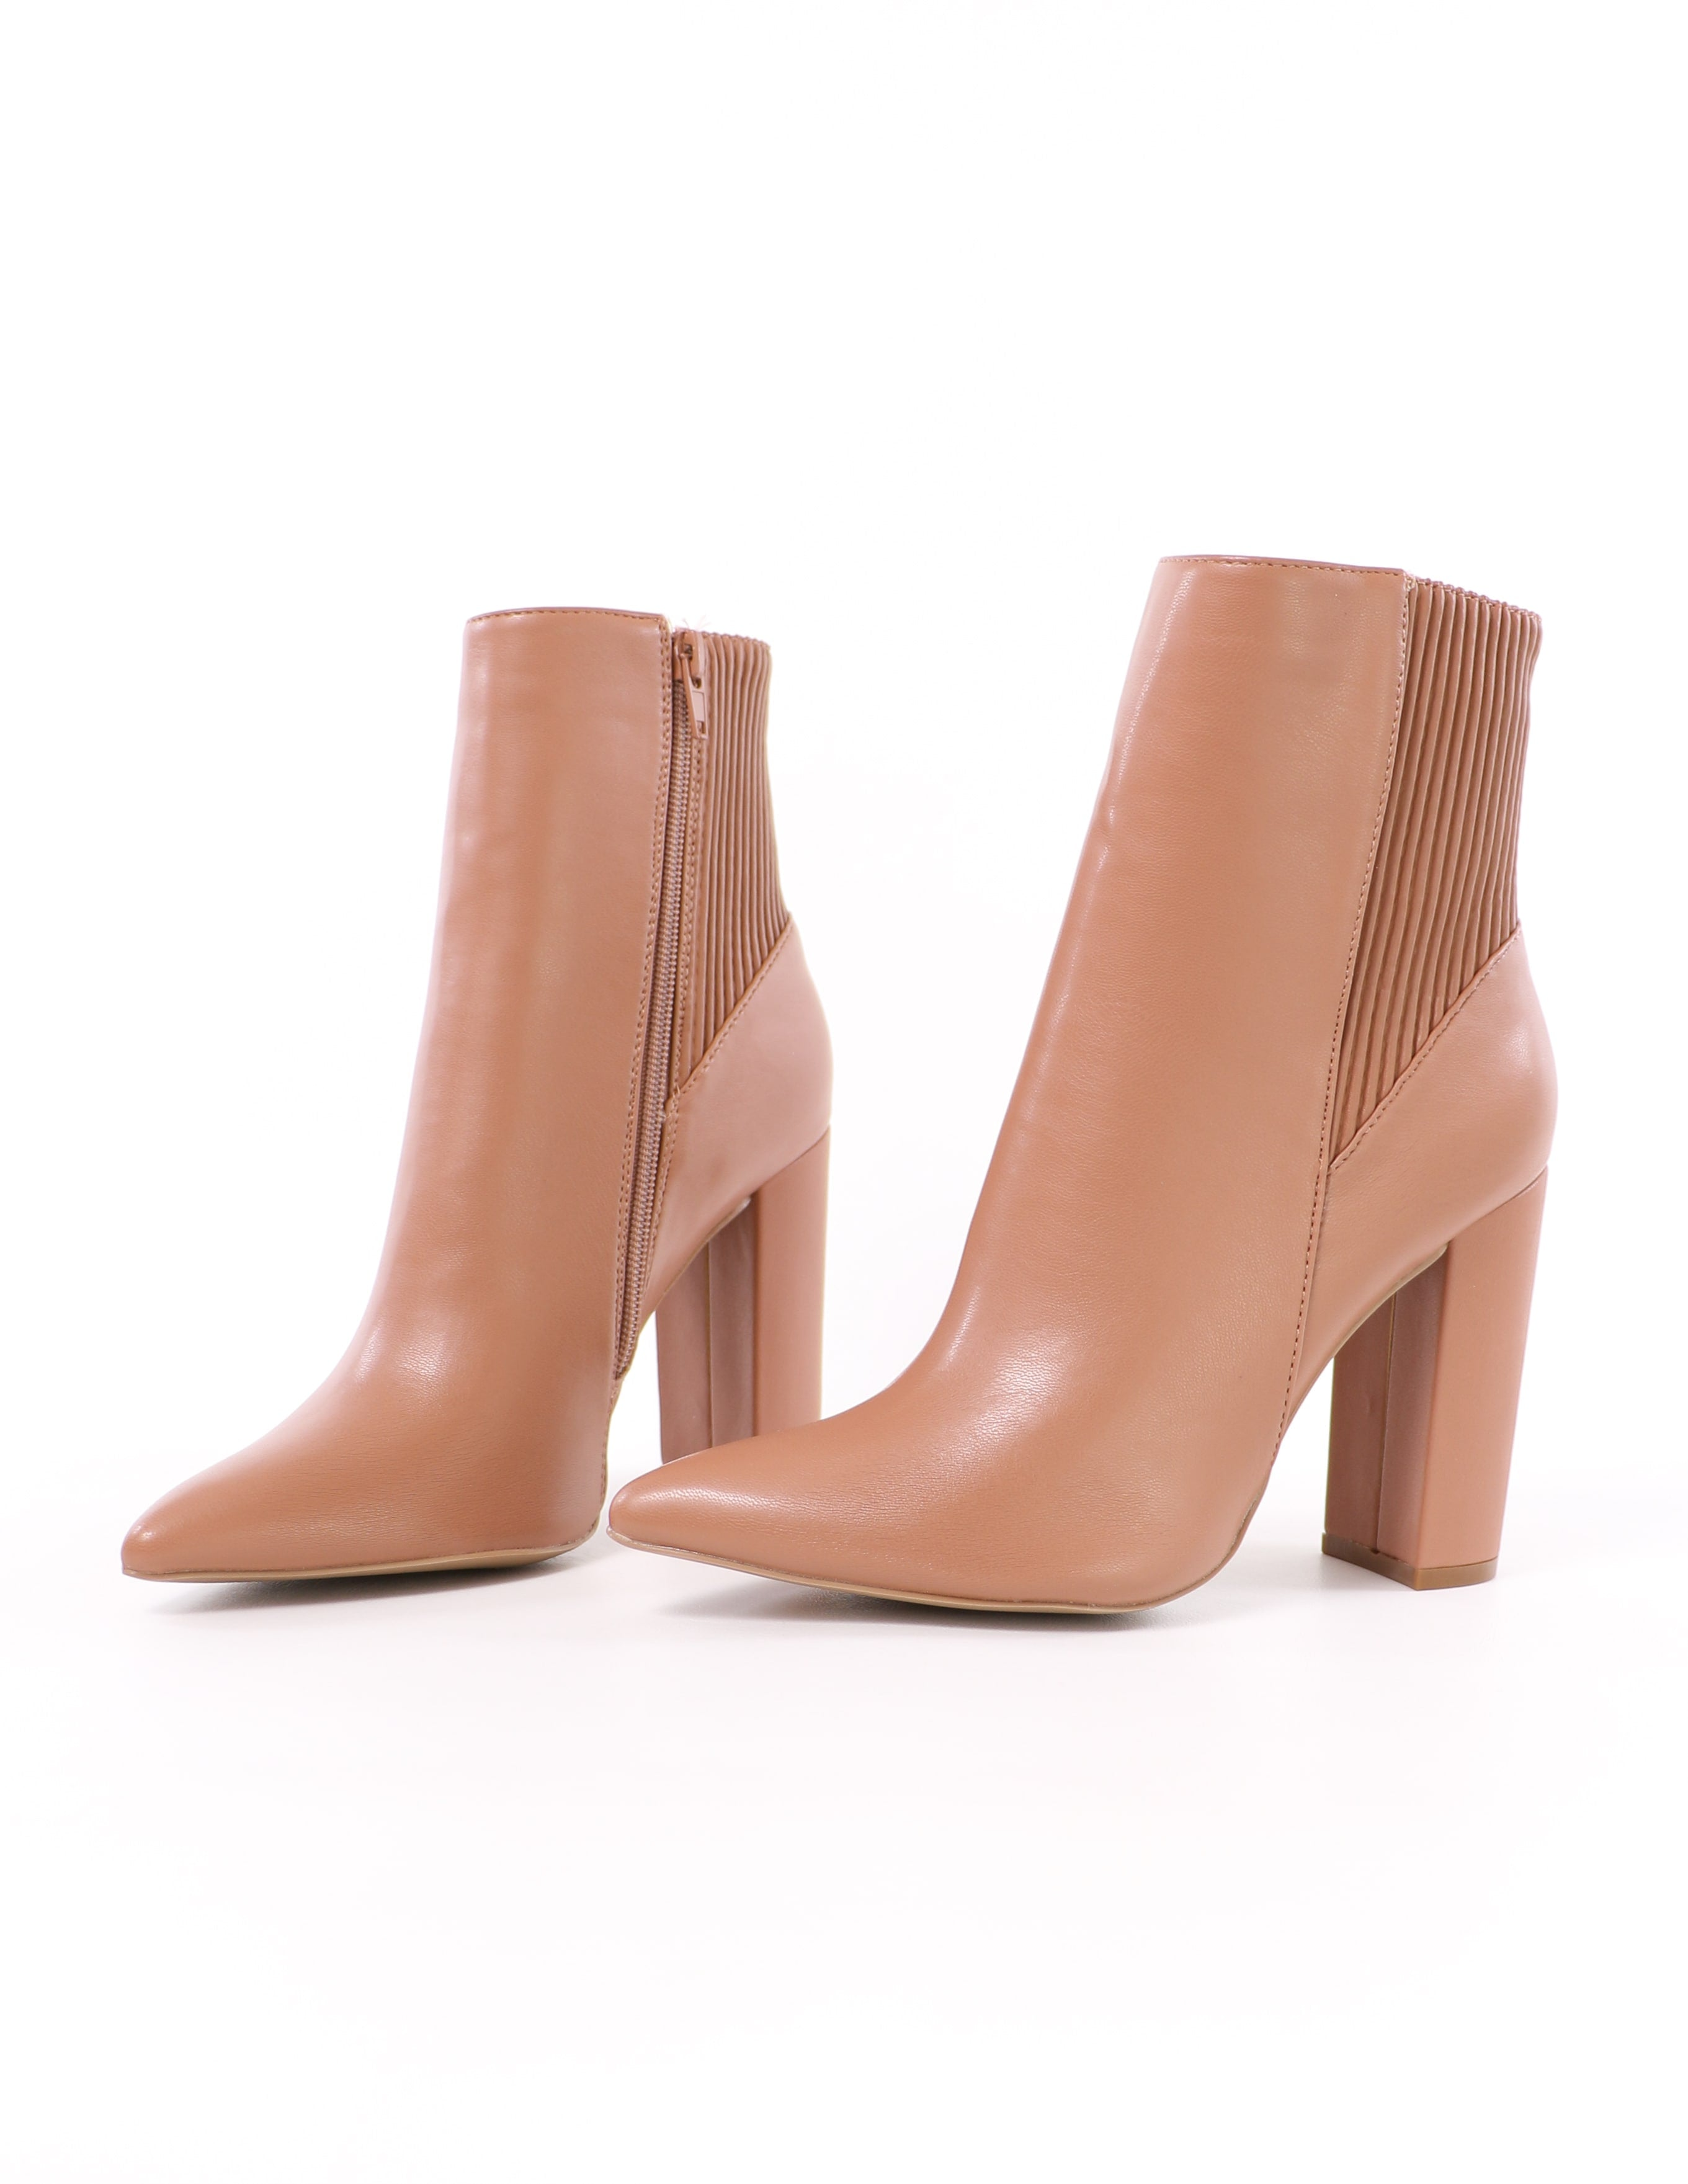 we're going out tonight mocha ribbed pointed toe ankle booties on white background - elle bleu shoes